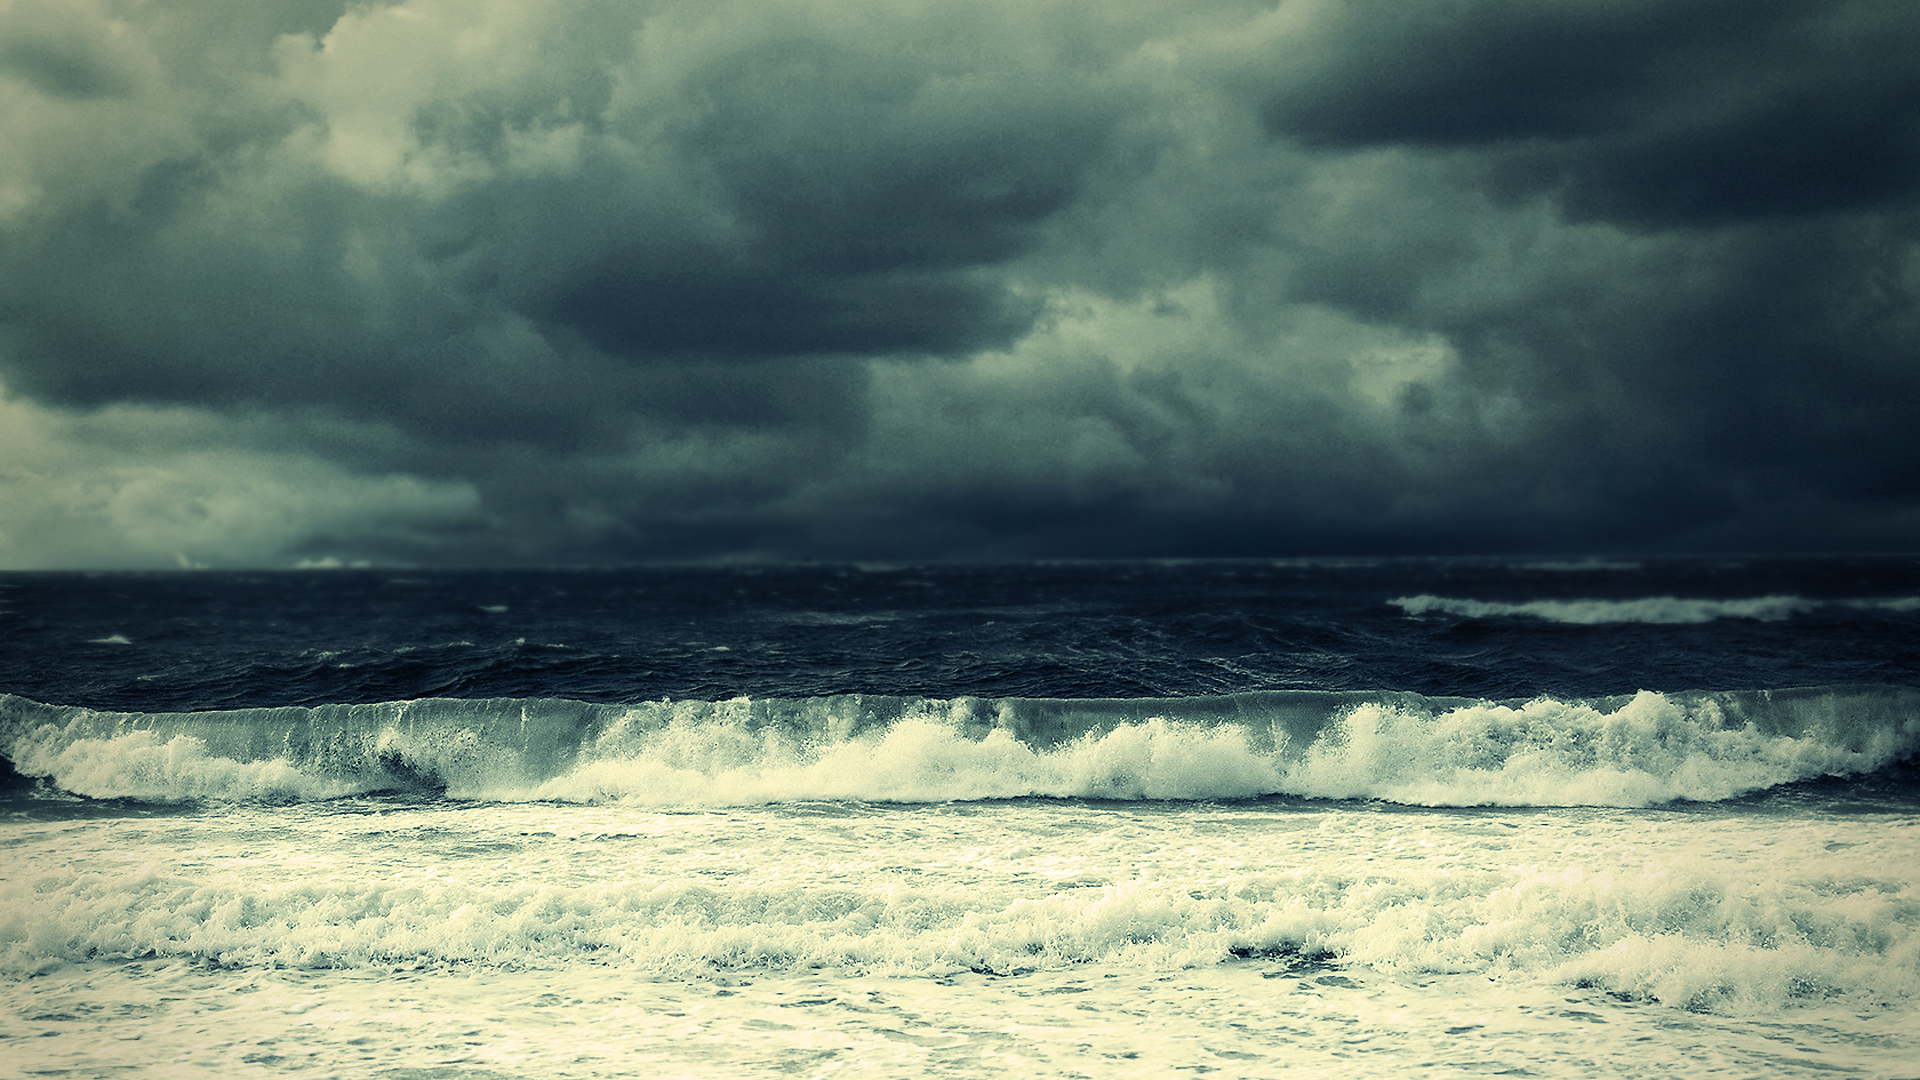 Download Stormy Ocean Wallpaper 1920x1080 | Wallpoper #251090